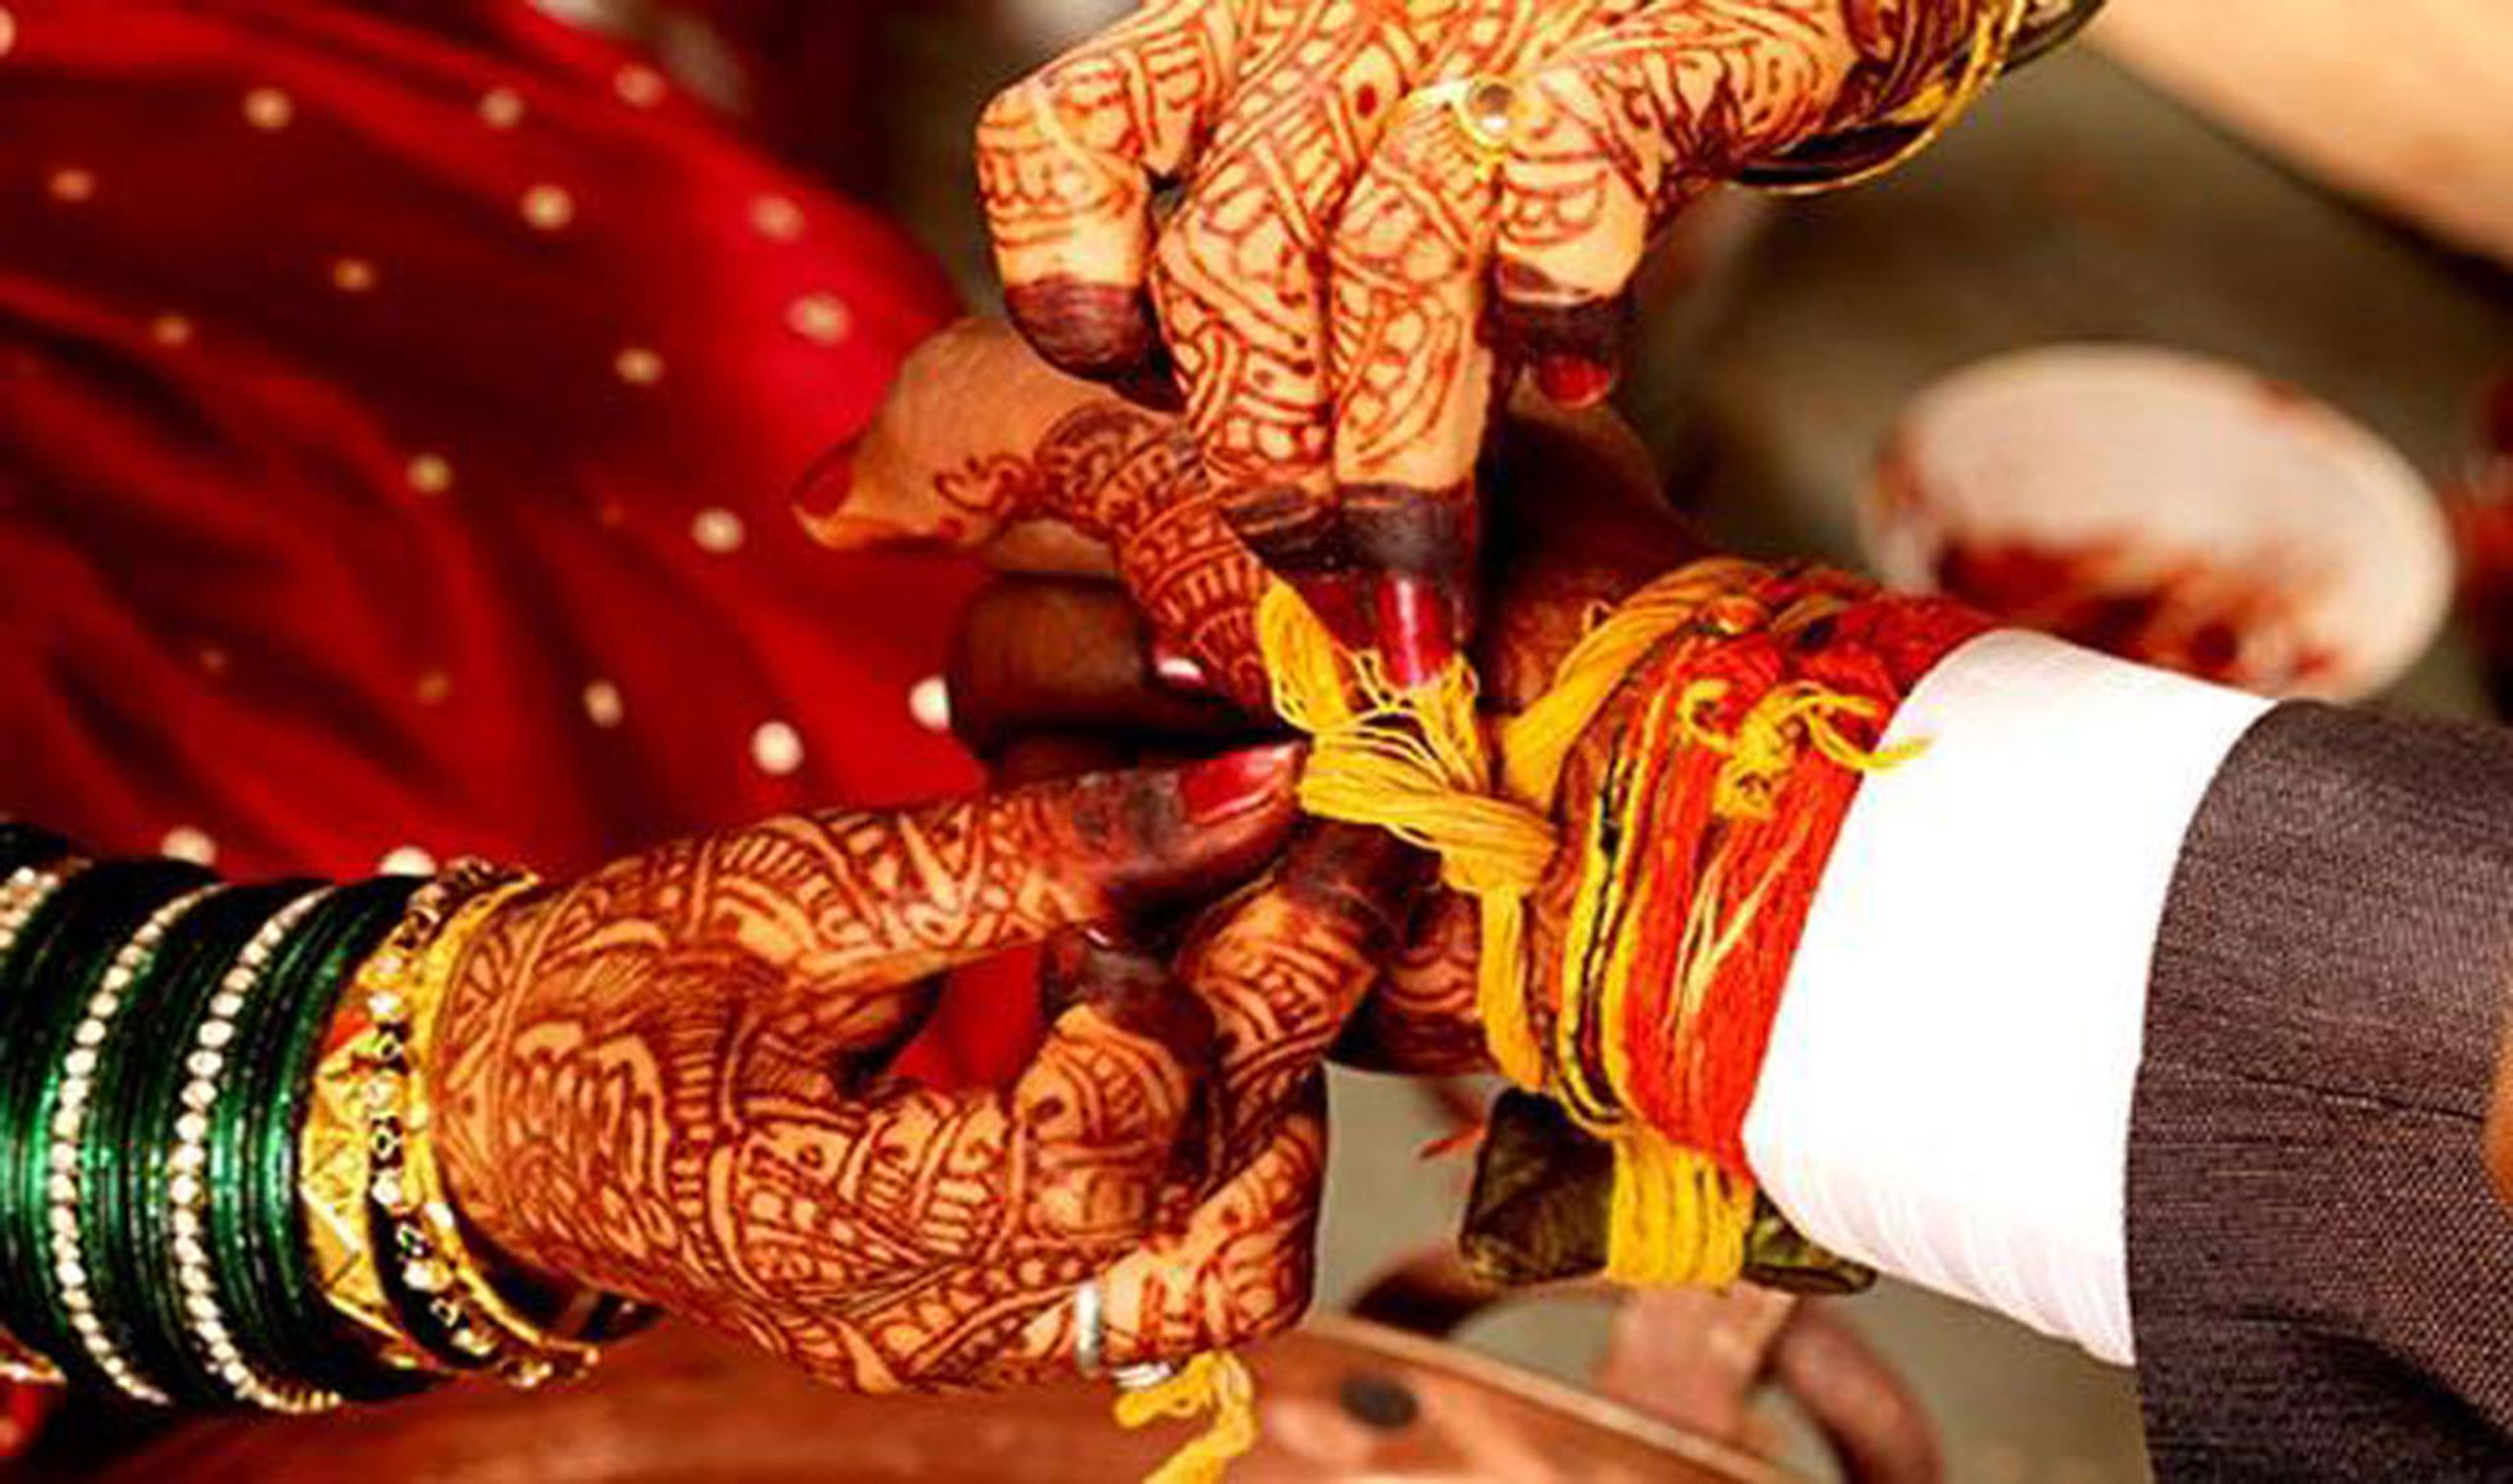 Arya Samaj Marriage in Keshav Puram